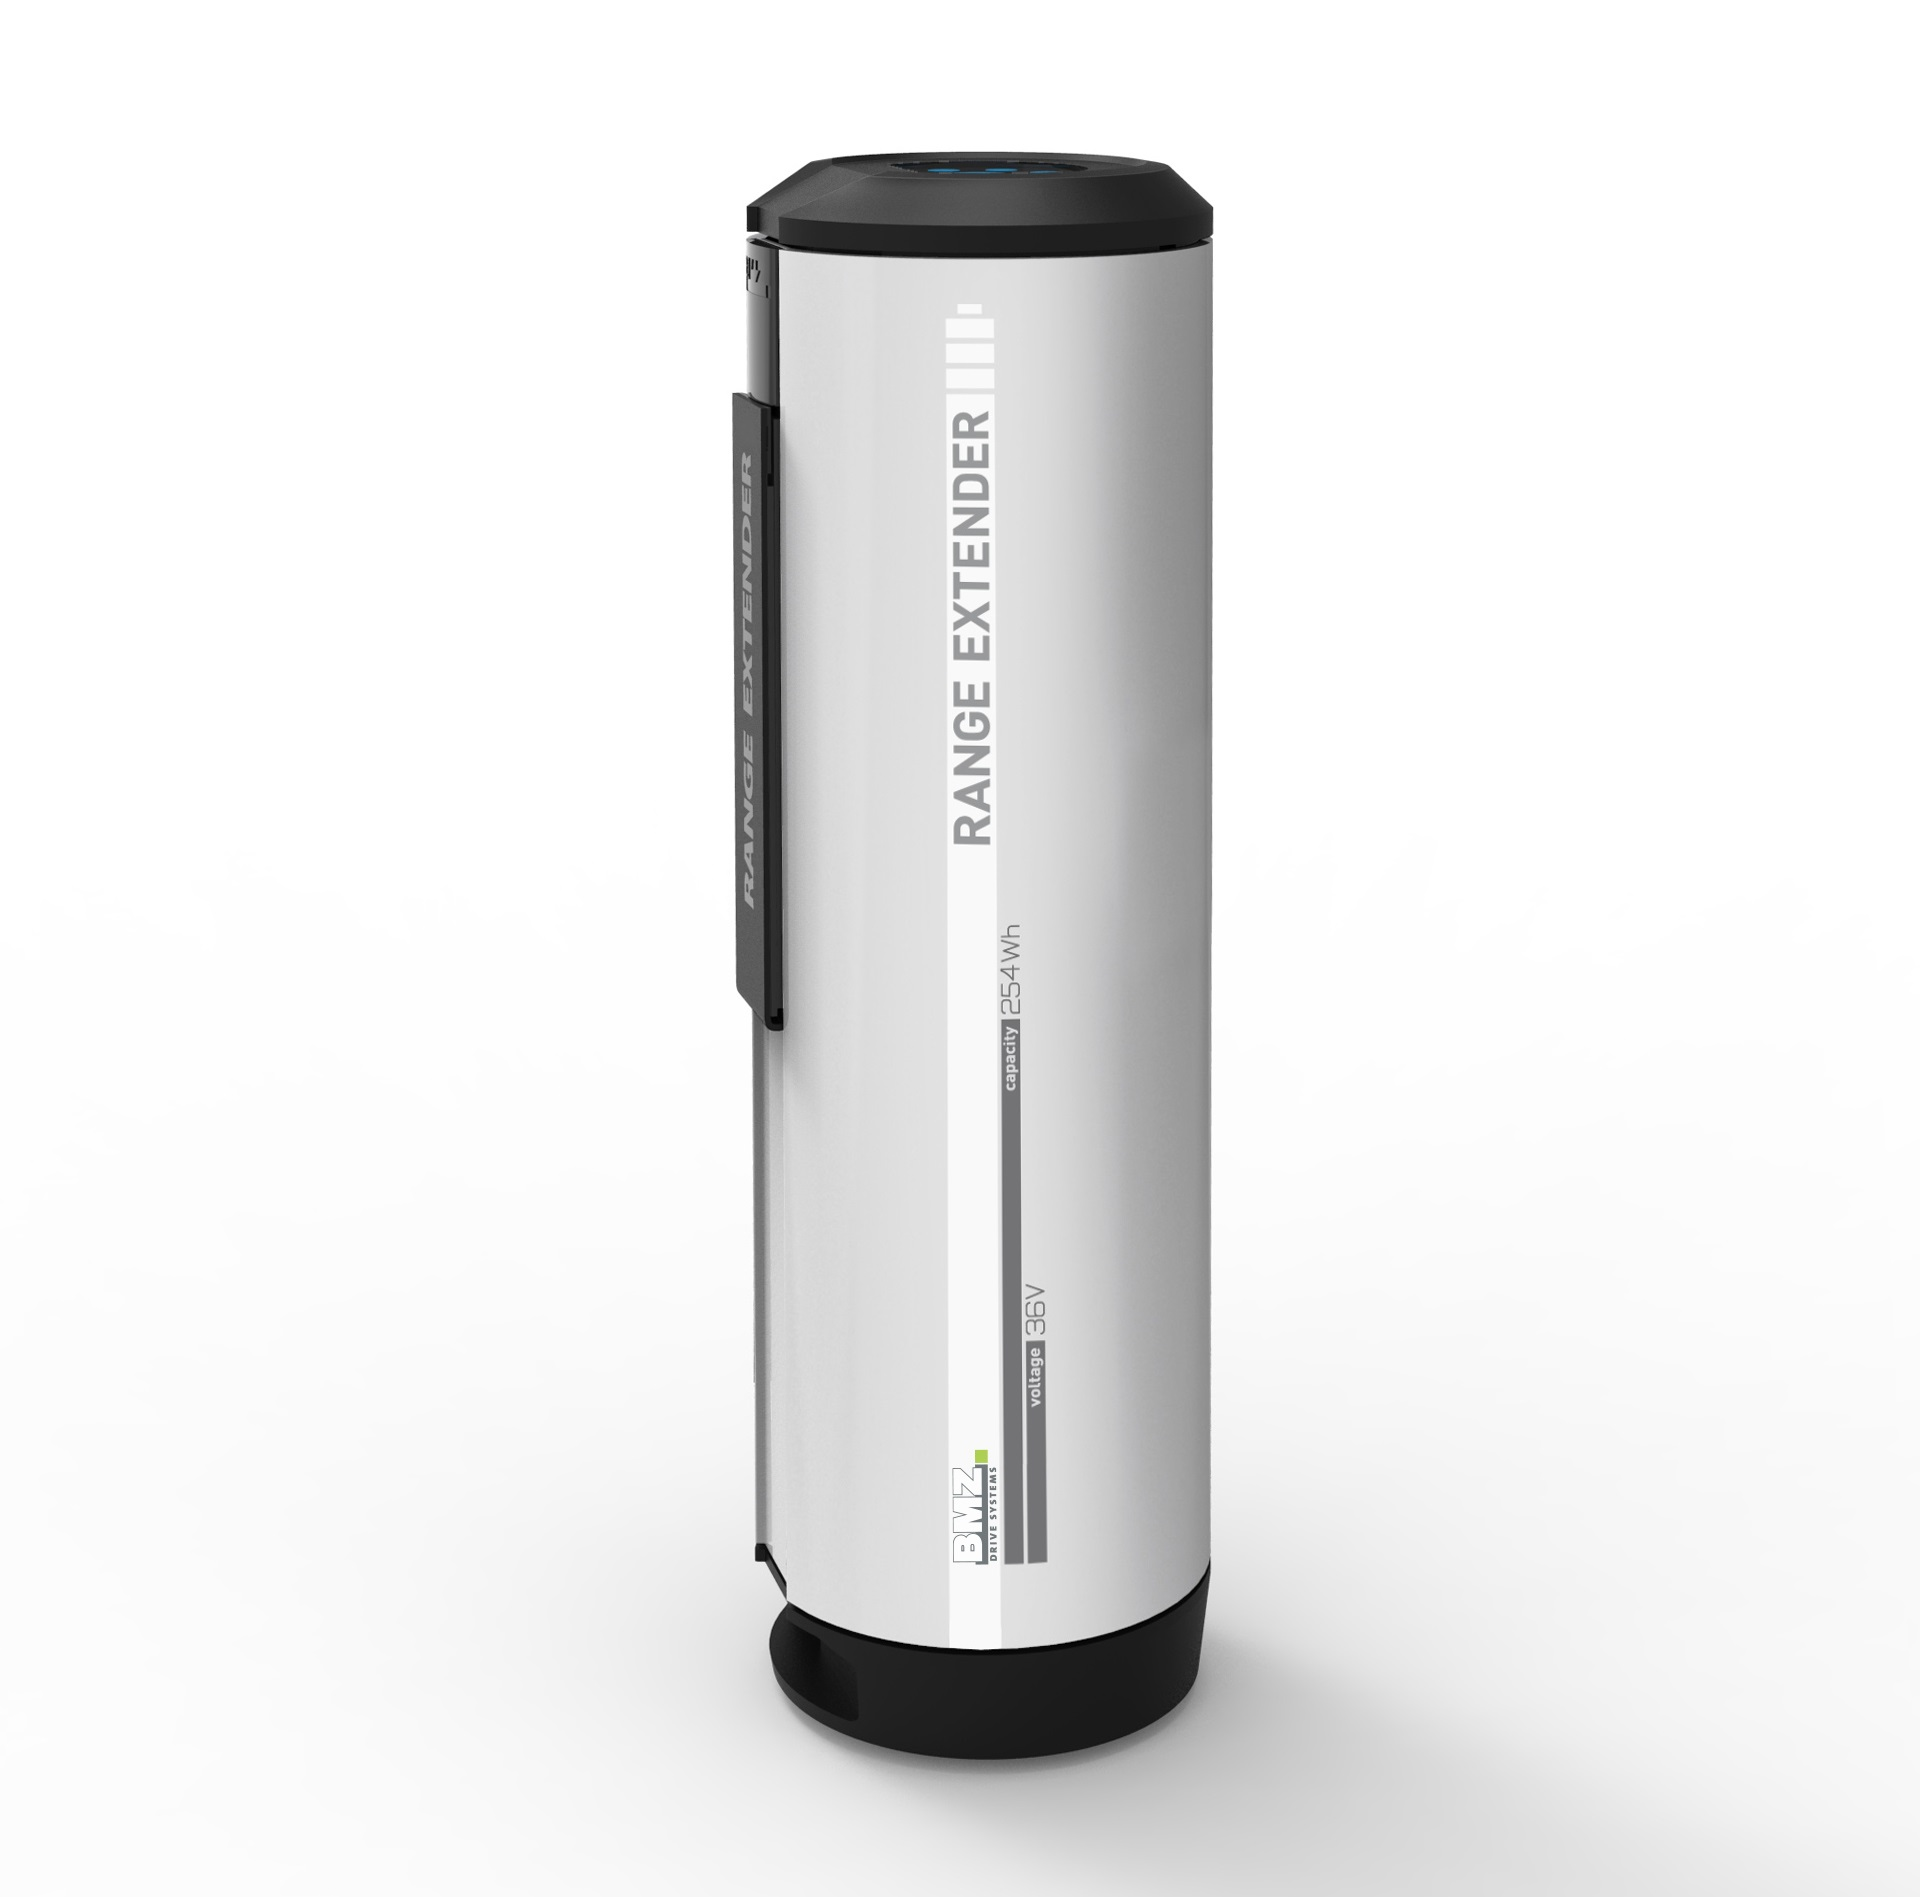 The Power Bank for E-bikes - the Range Extender by BMZ, BMZ